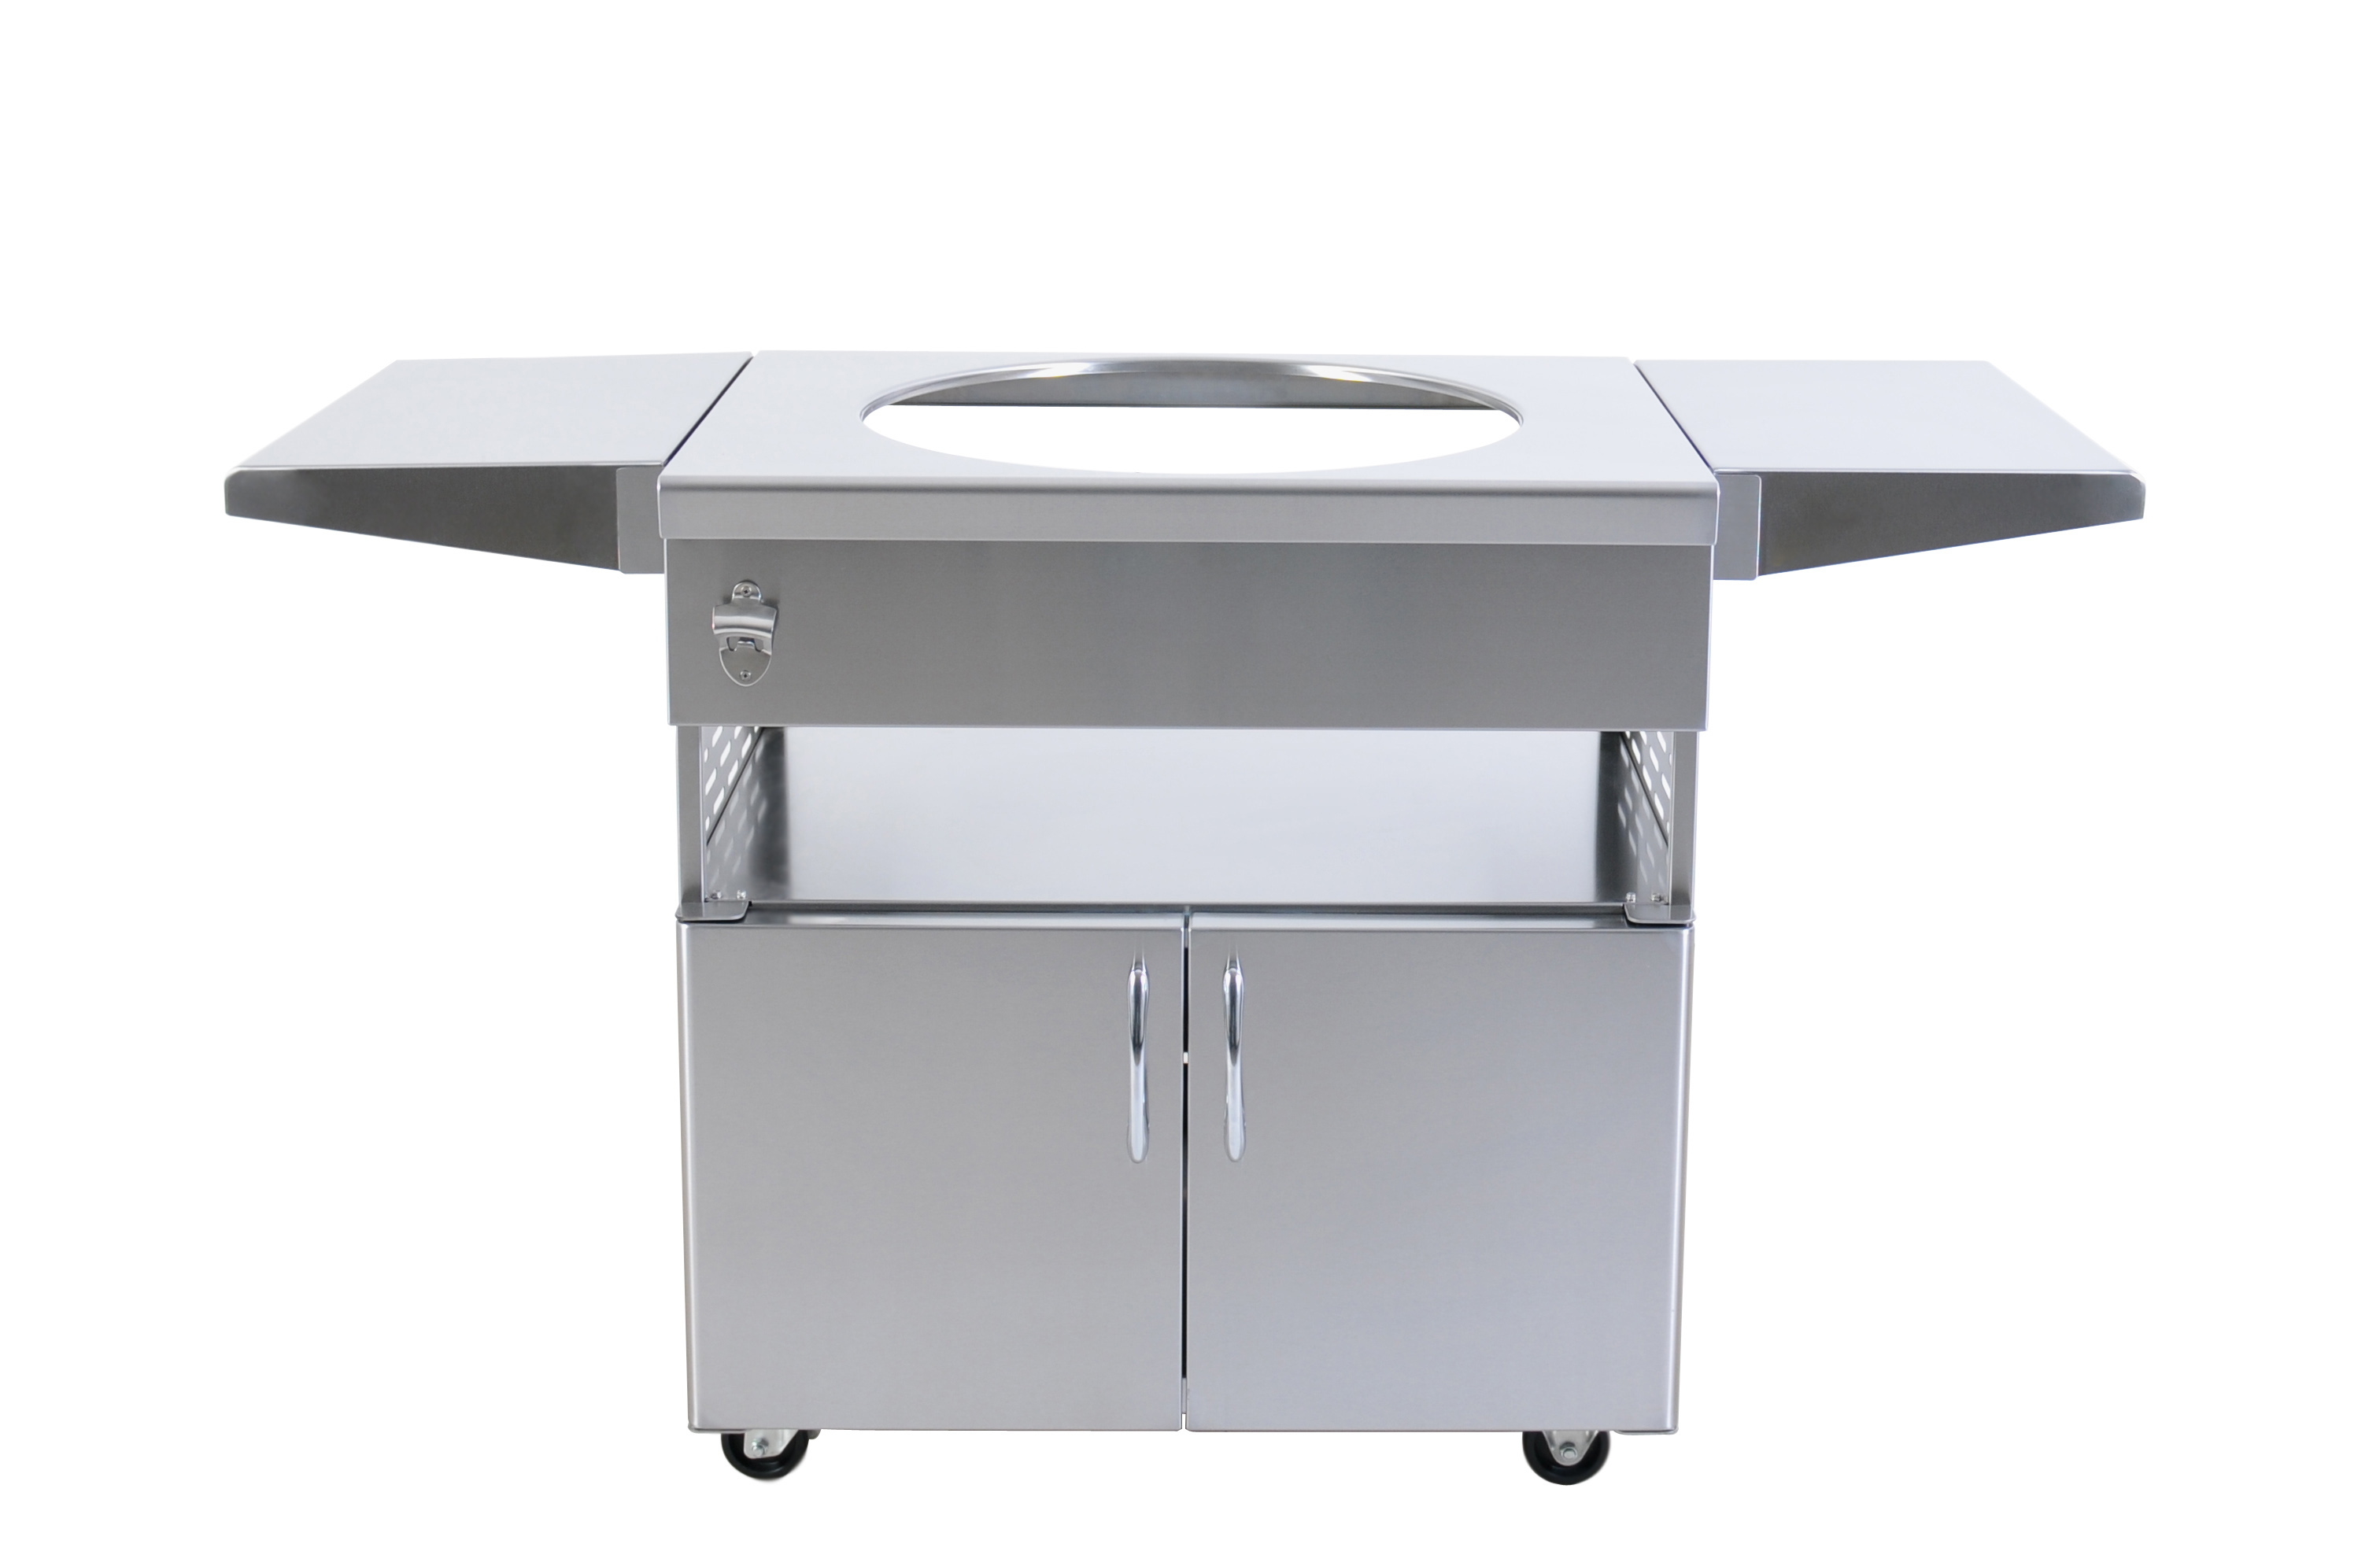 Luxury barbecue stainless steel benches